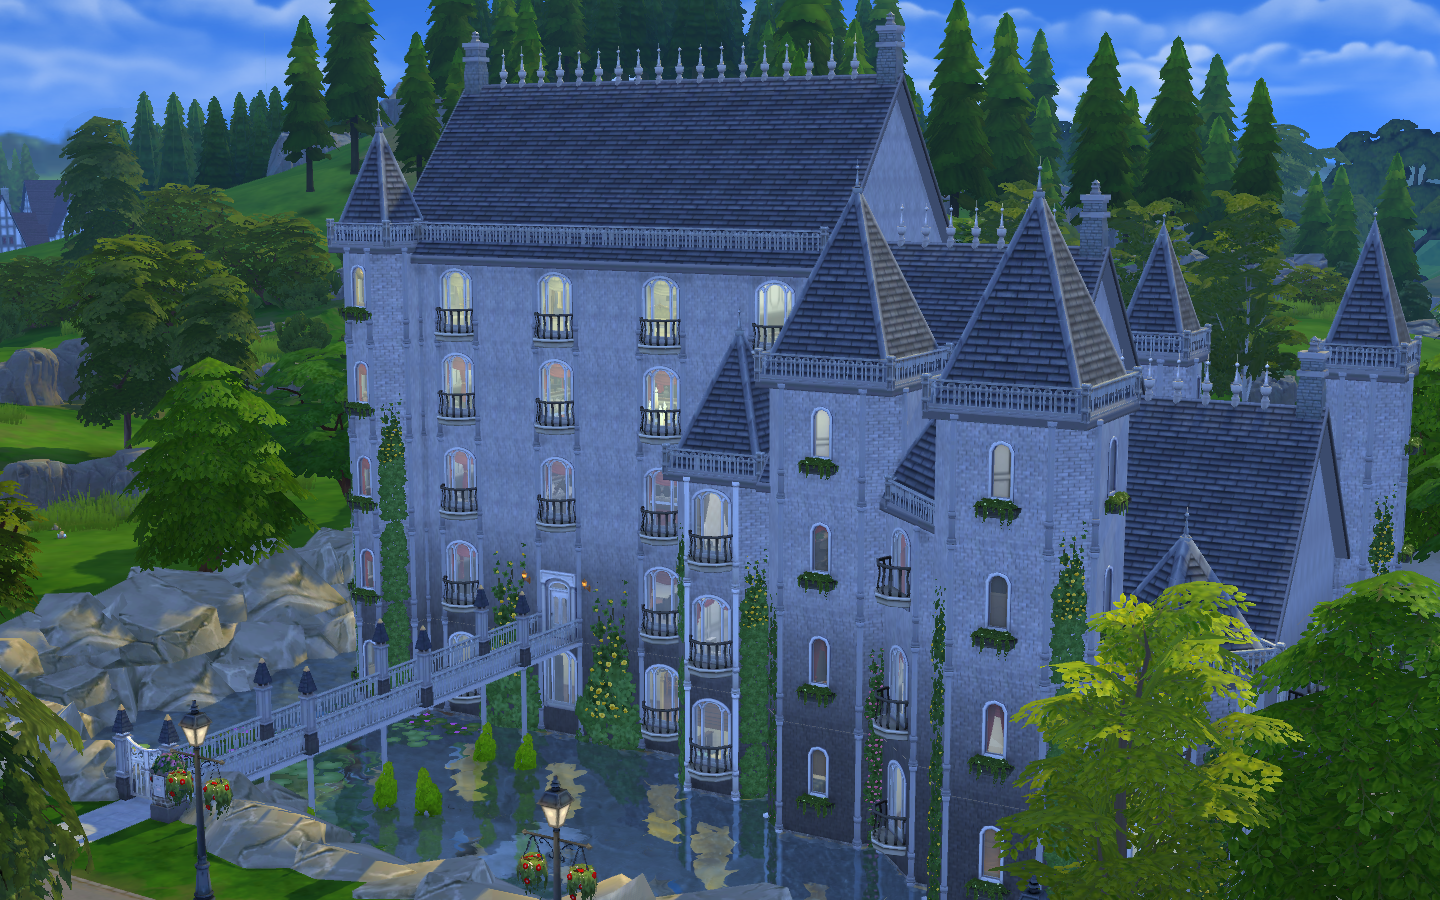 Mod The Sims - French Castle